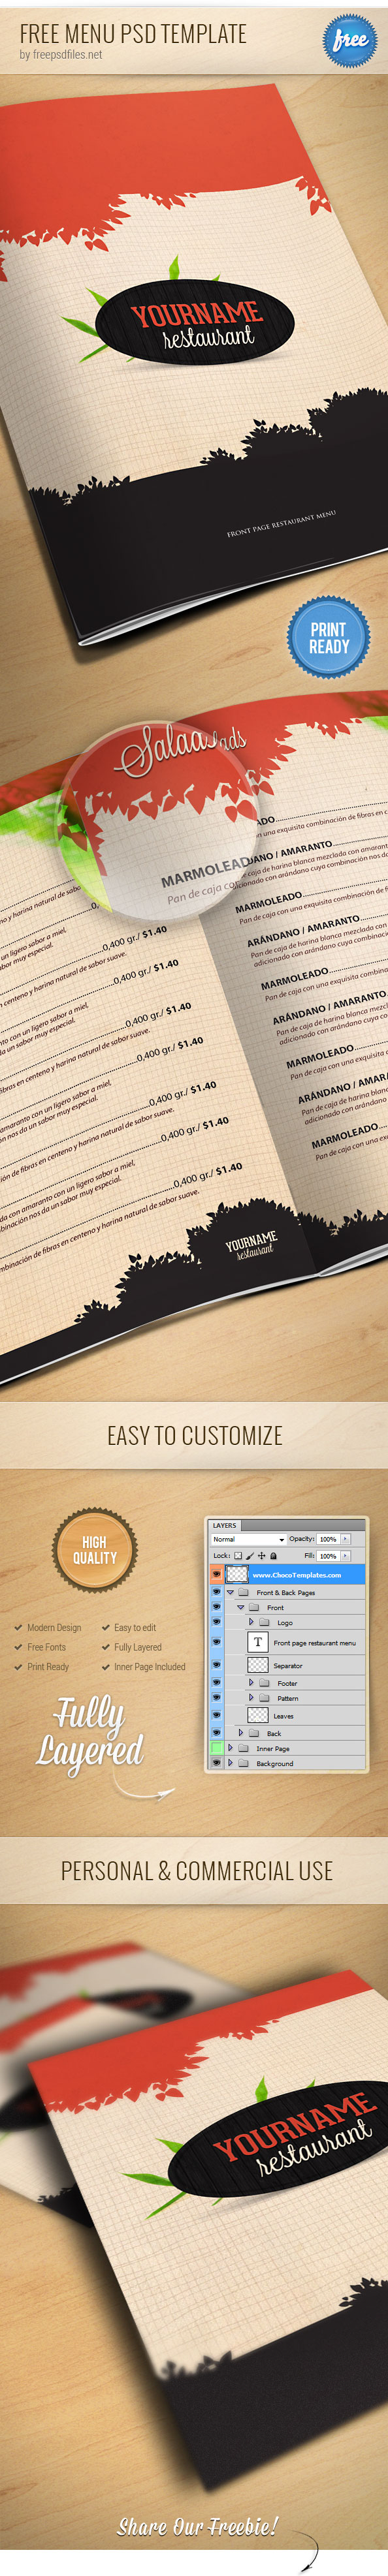 Restaurant menu psd template free psd files for Restaurant menu psd